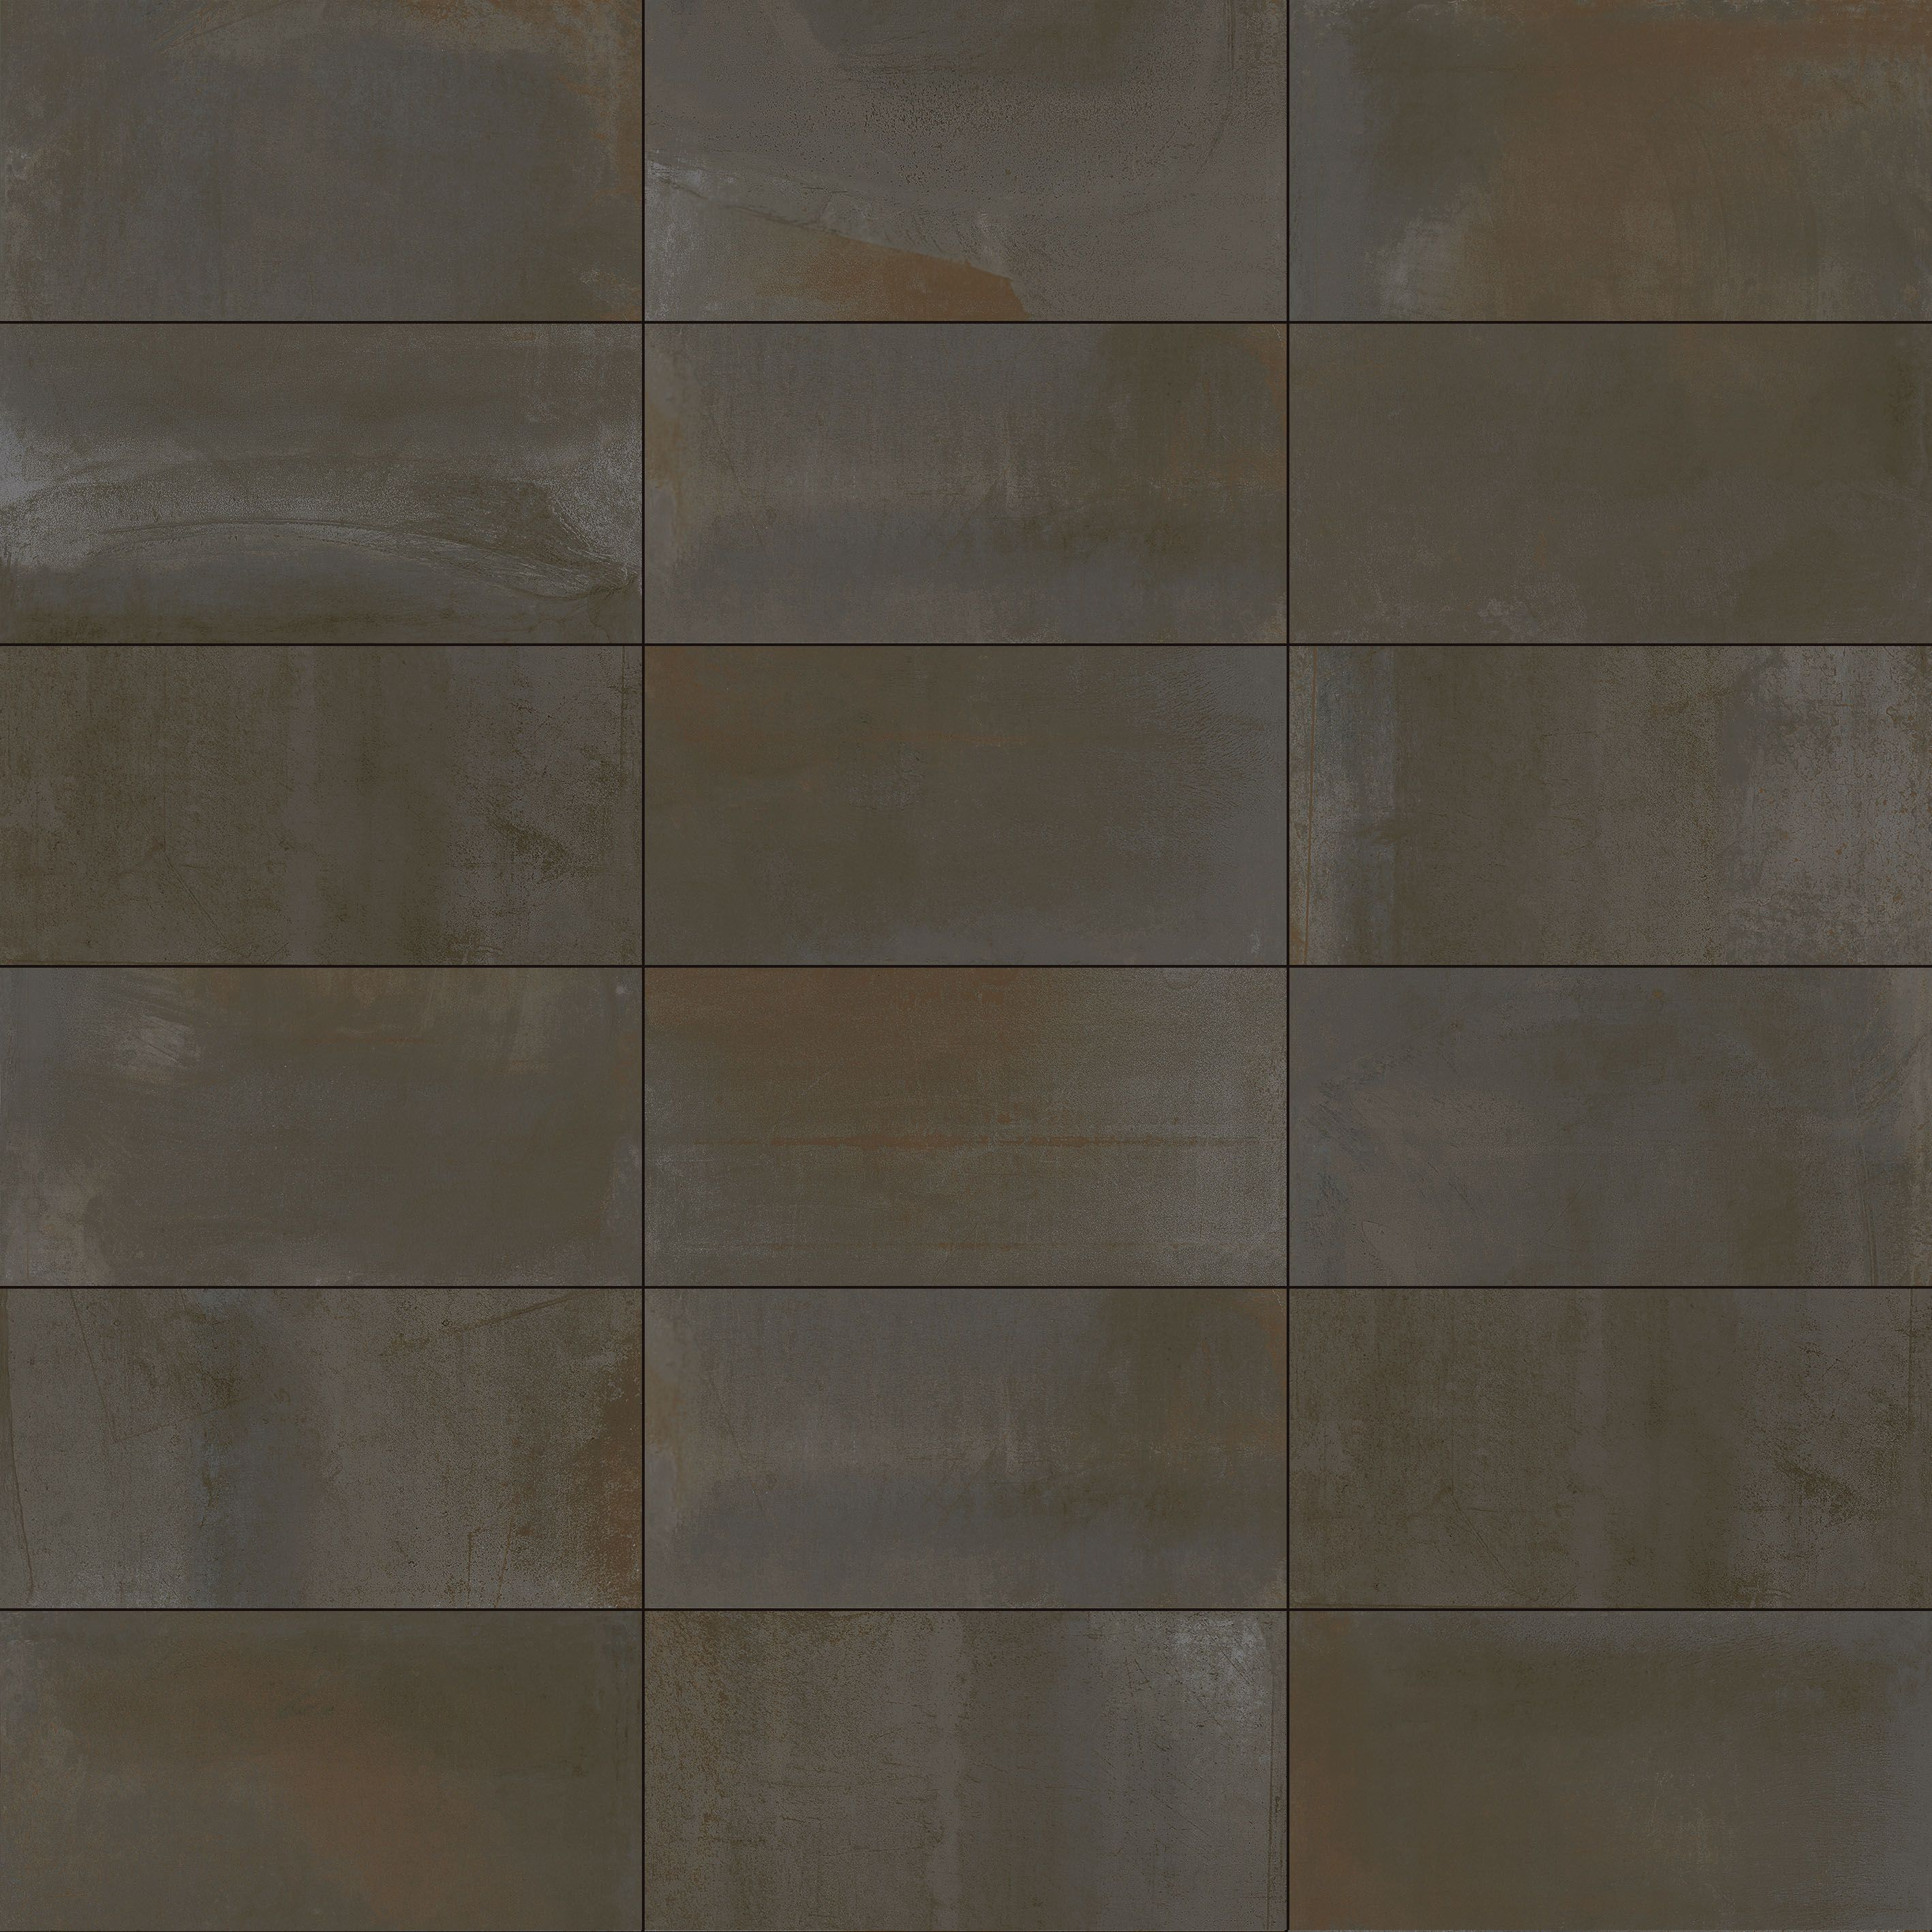 Ceramic Tiles Inspired By Rusted Metal And Cement Ceramic Tiles Rusted Metal Cement